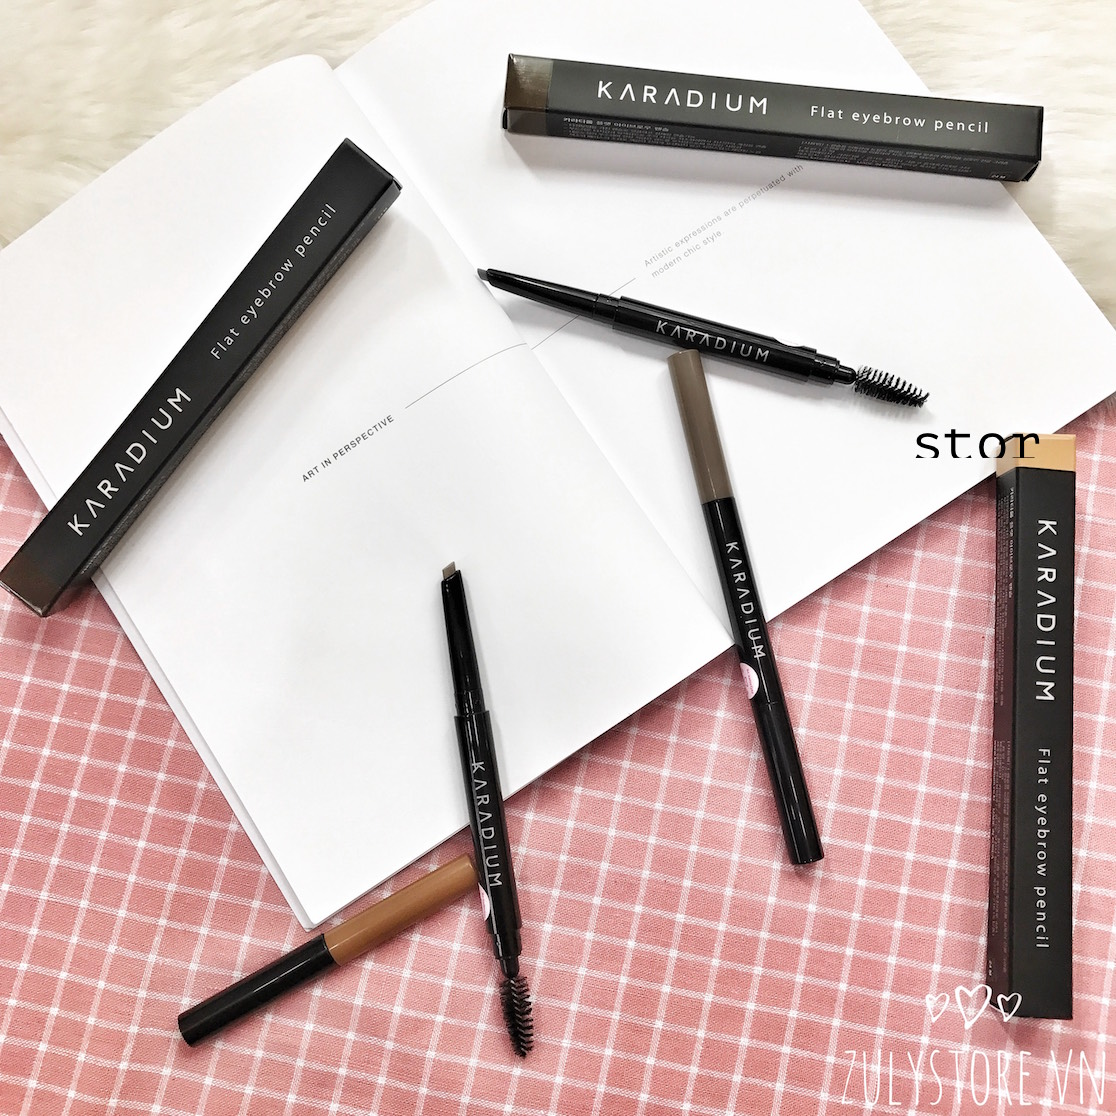 Kẻ mày Flat eyebrow pencil Karadium 1